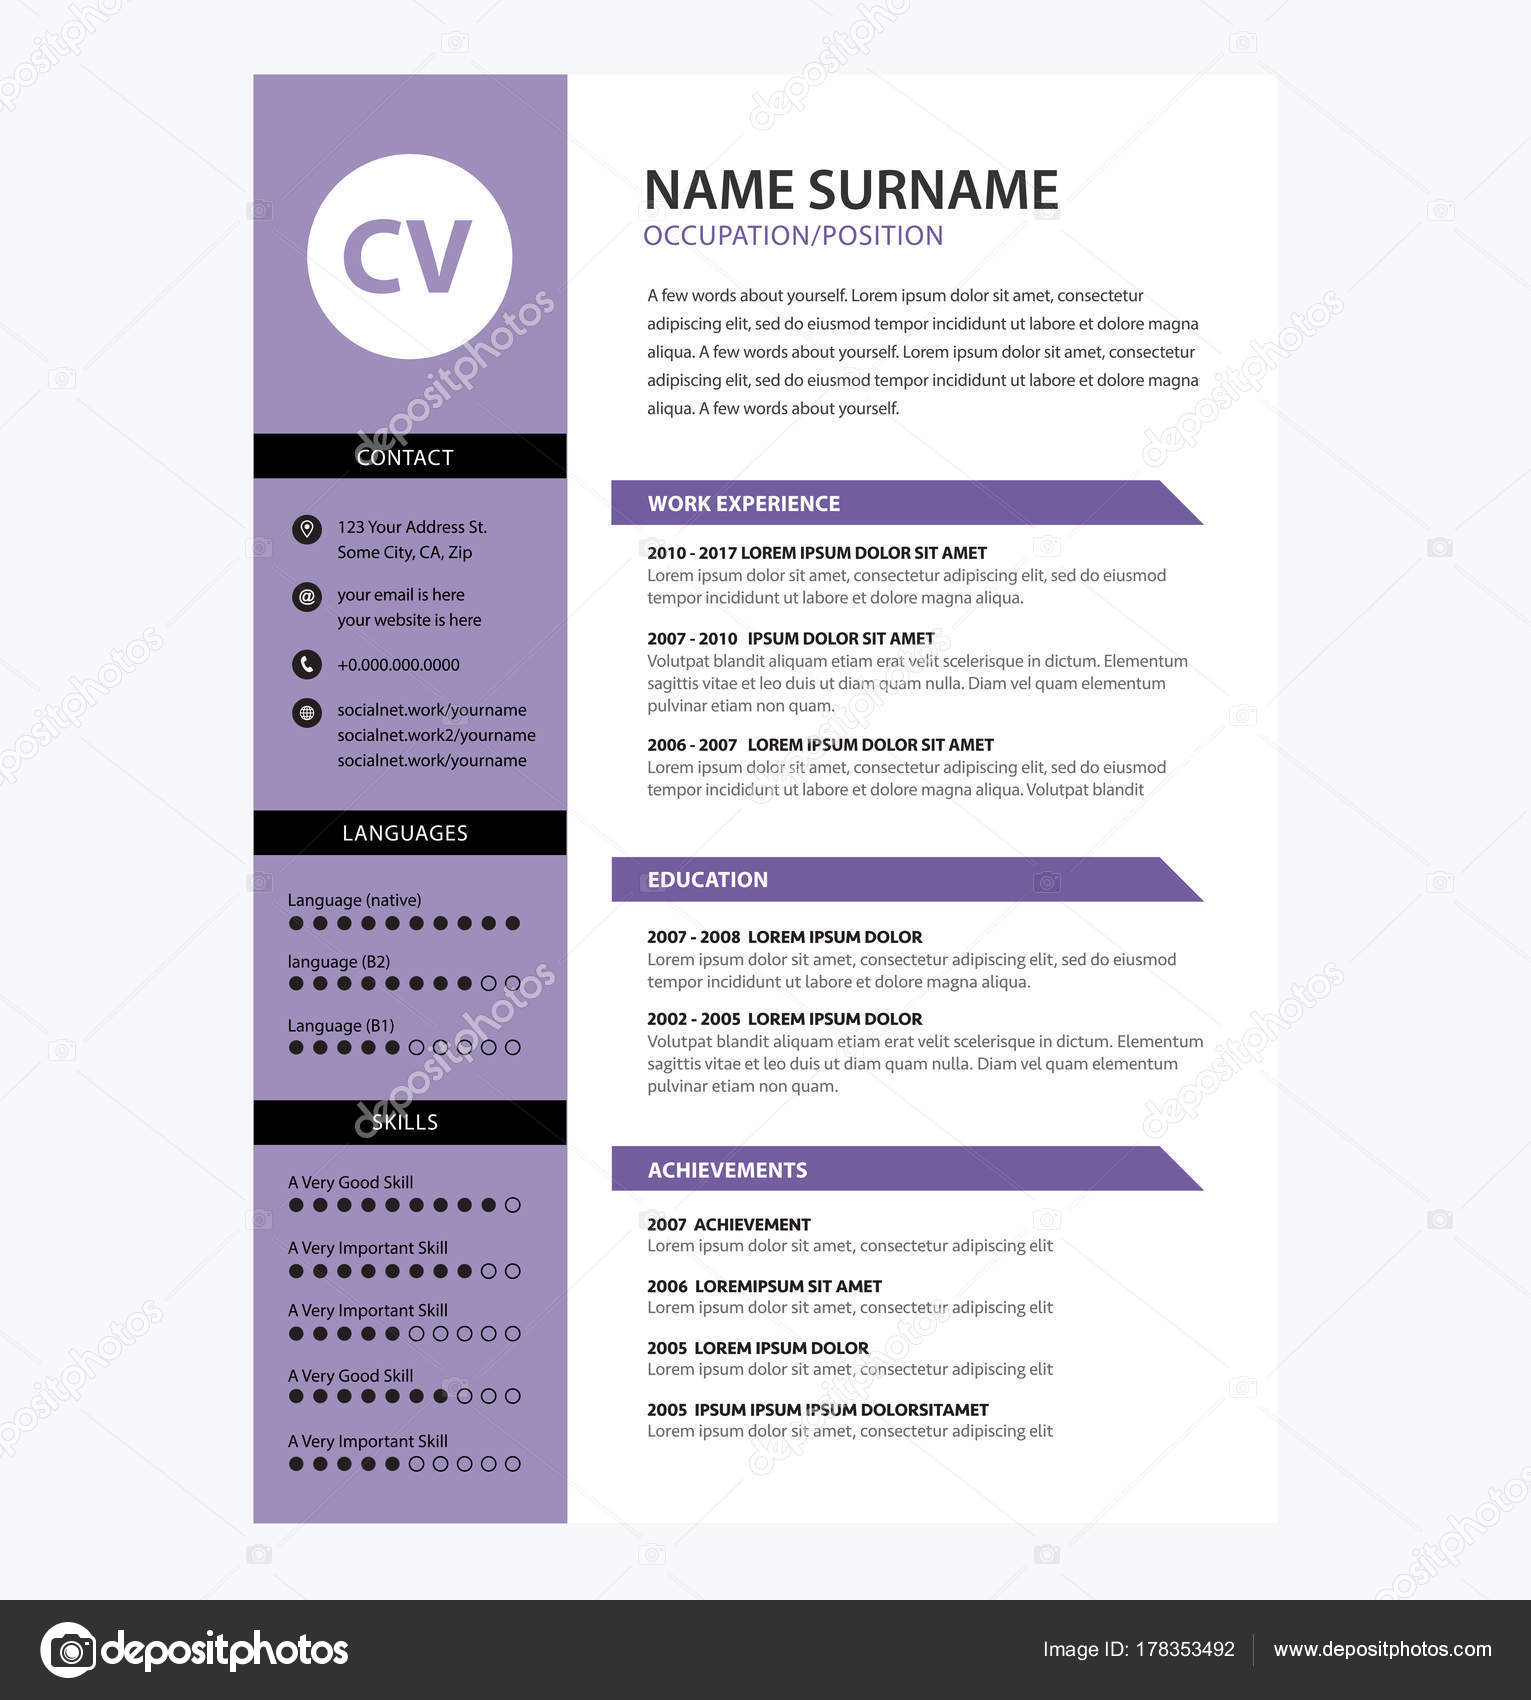 Minimalist Cv Template Ultra Violet Color  Vector  Stock Vector